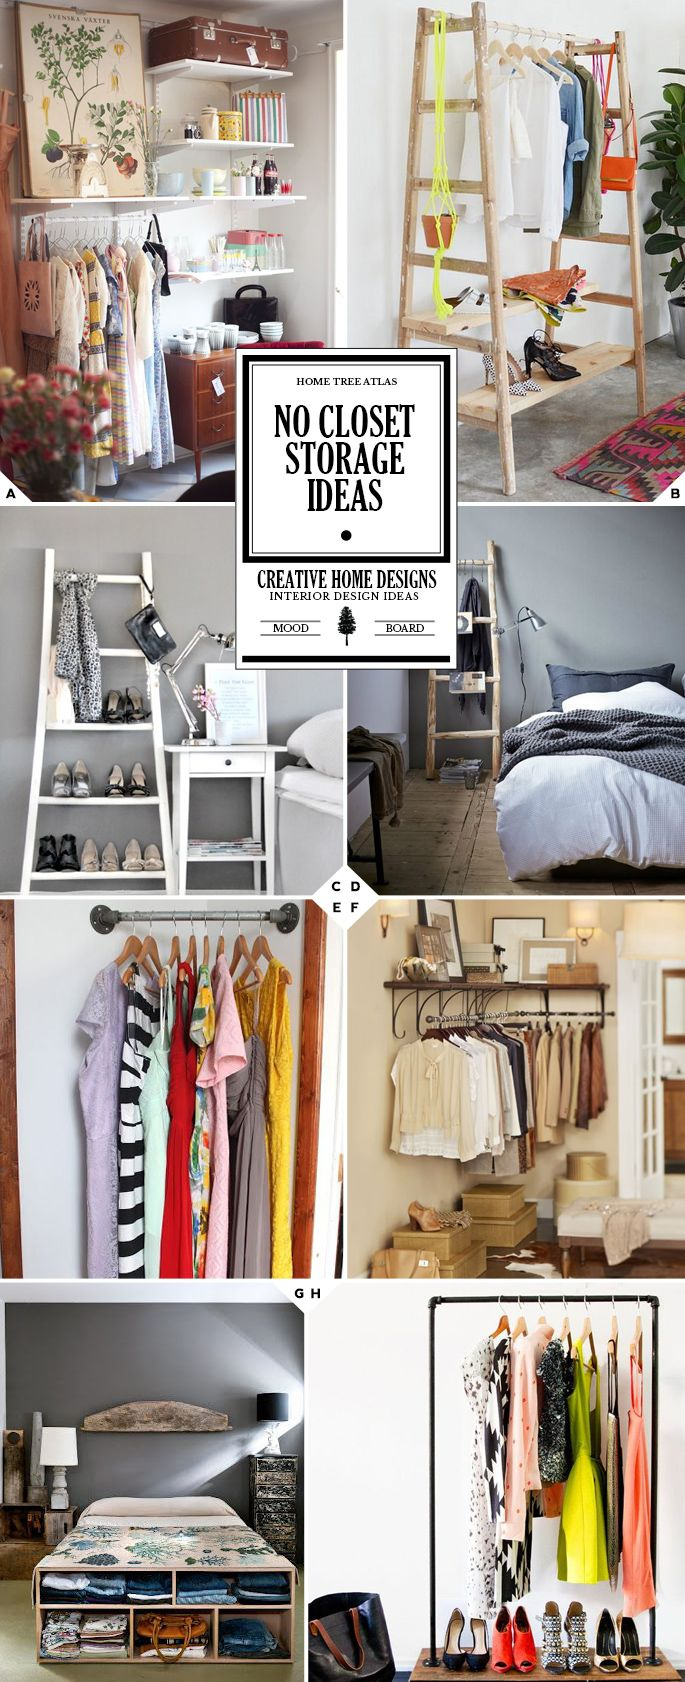 Incroyable Getting Creative: No Closet Solutions And Storage Ideas